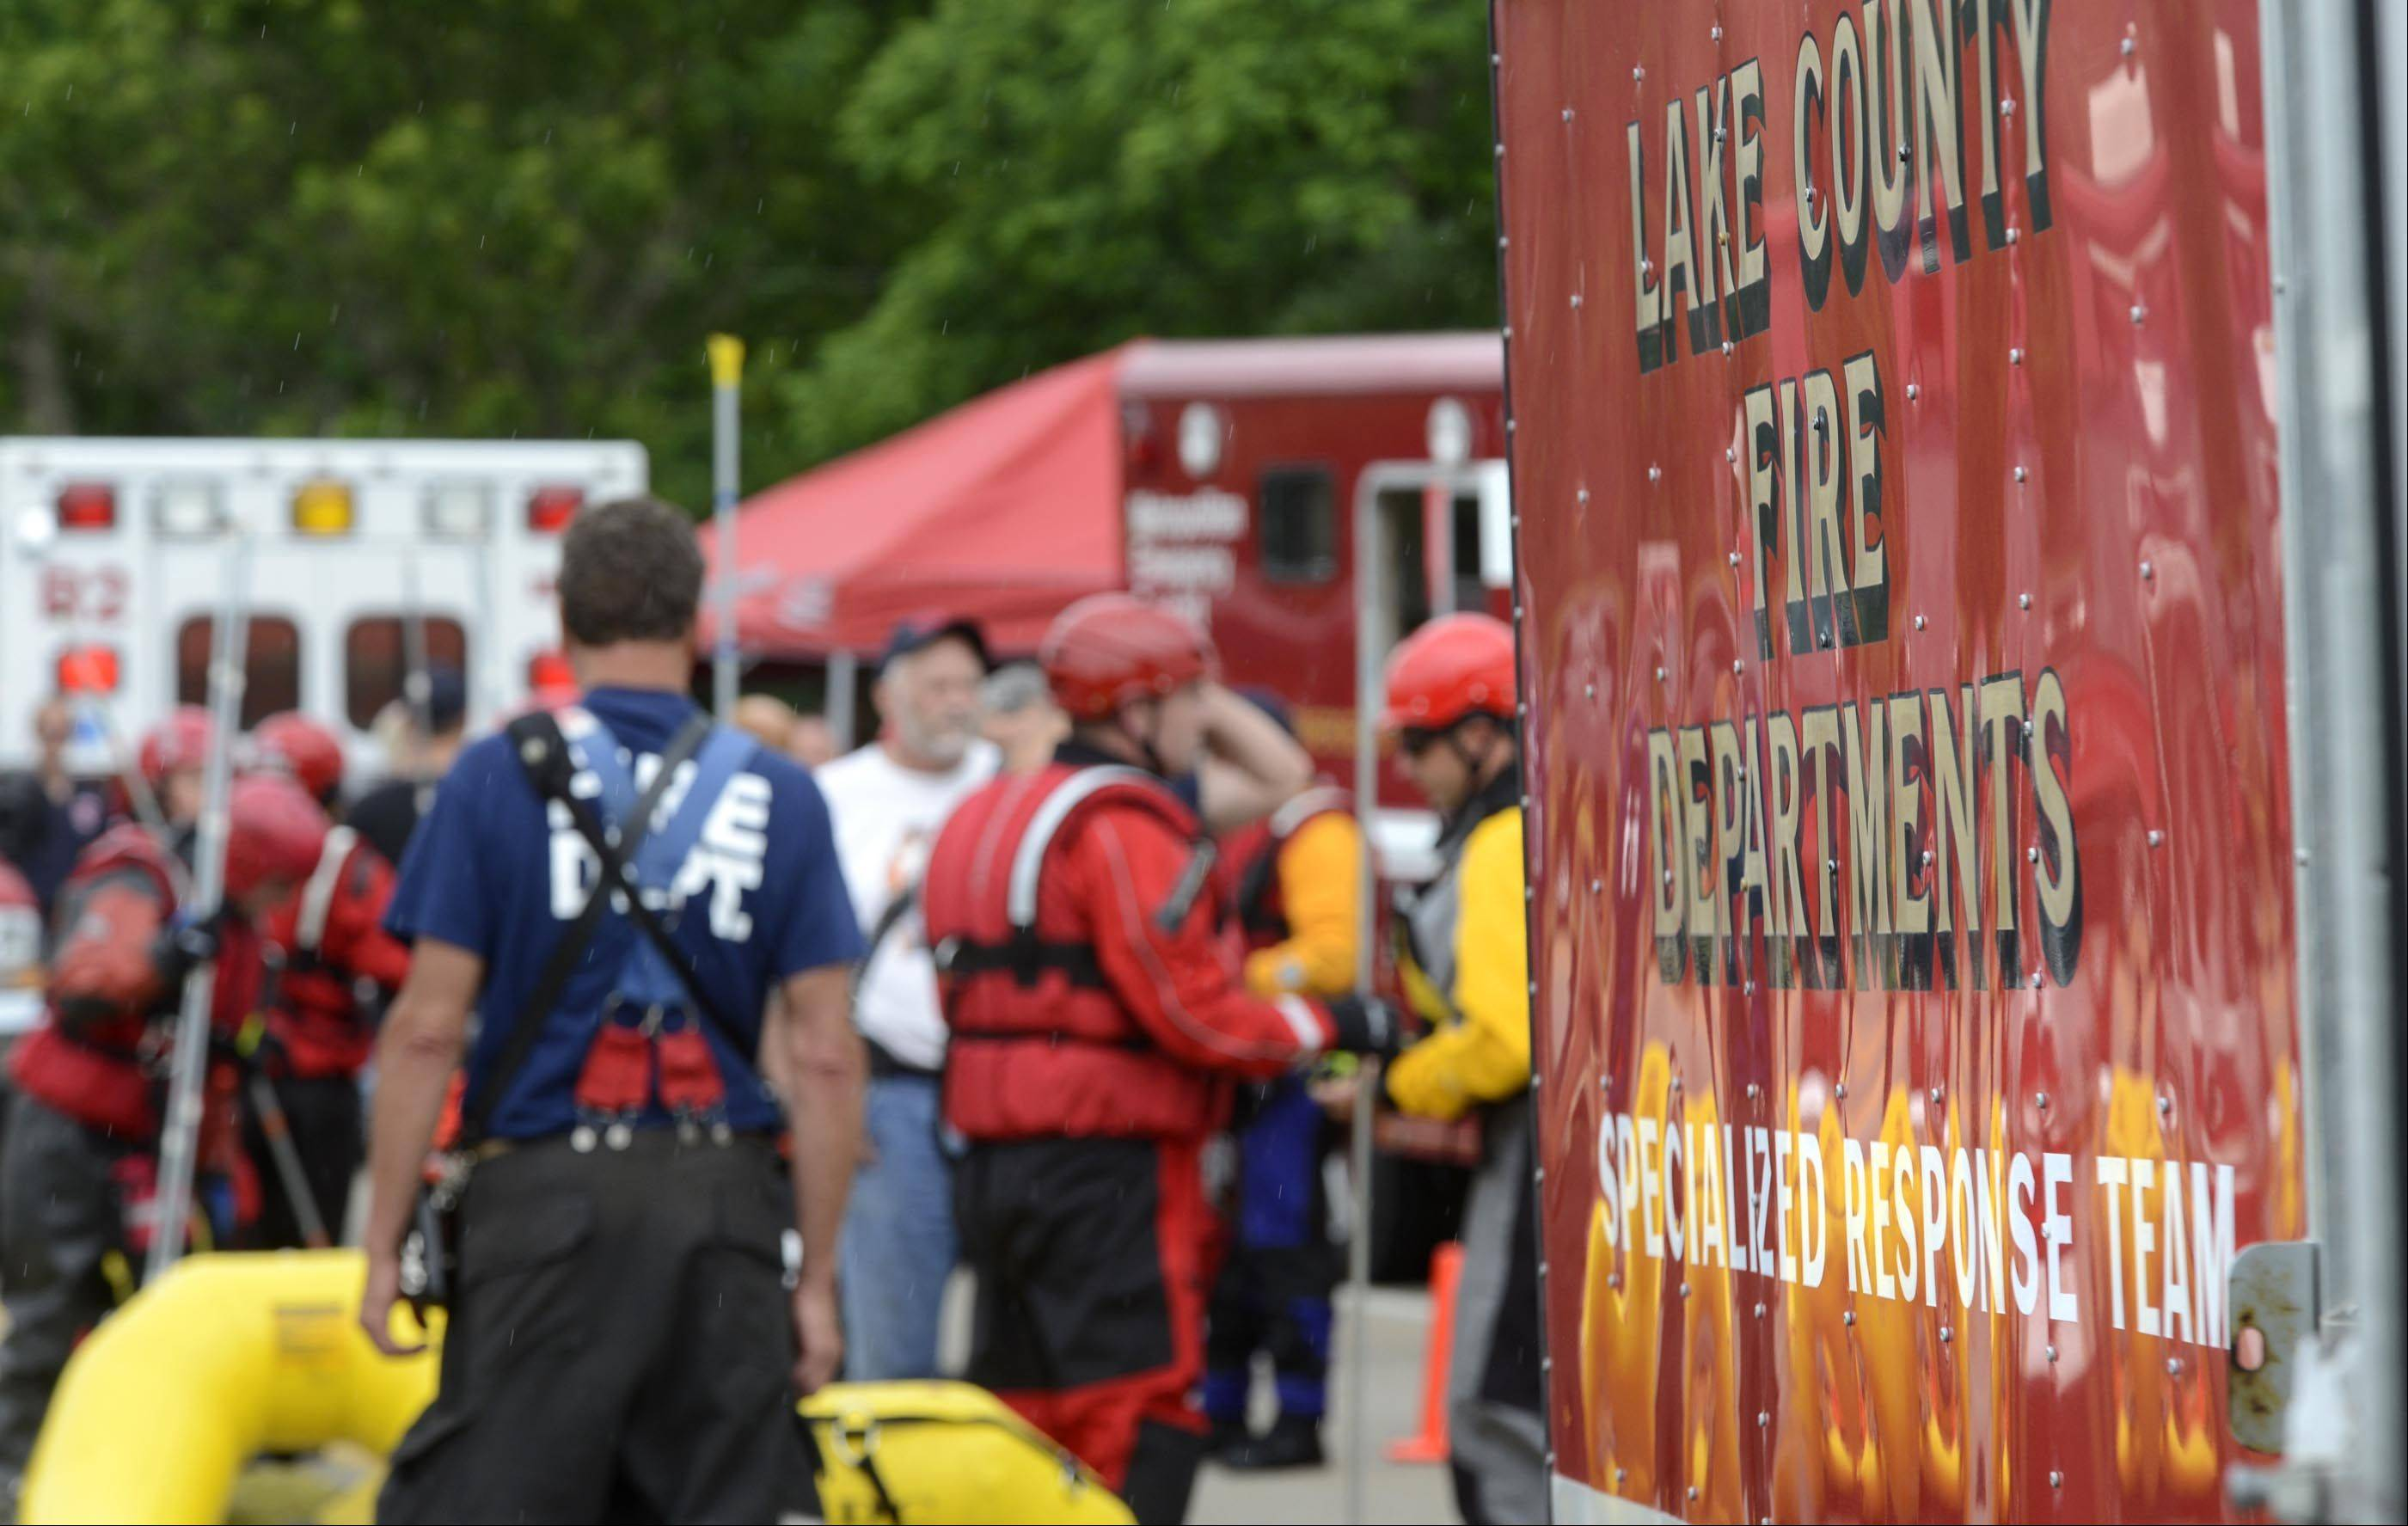 Multiple rescue crews gather on the Kelsey Road bridge in Lake Barrington to look for a reported person and dog in a fast-moving, flooded creek in the Grassy Lake Forest Preserve after noon Wednesday.